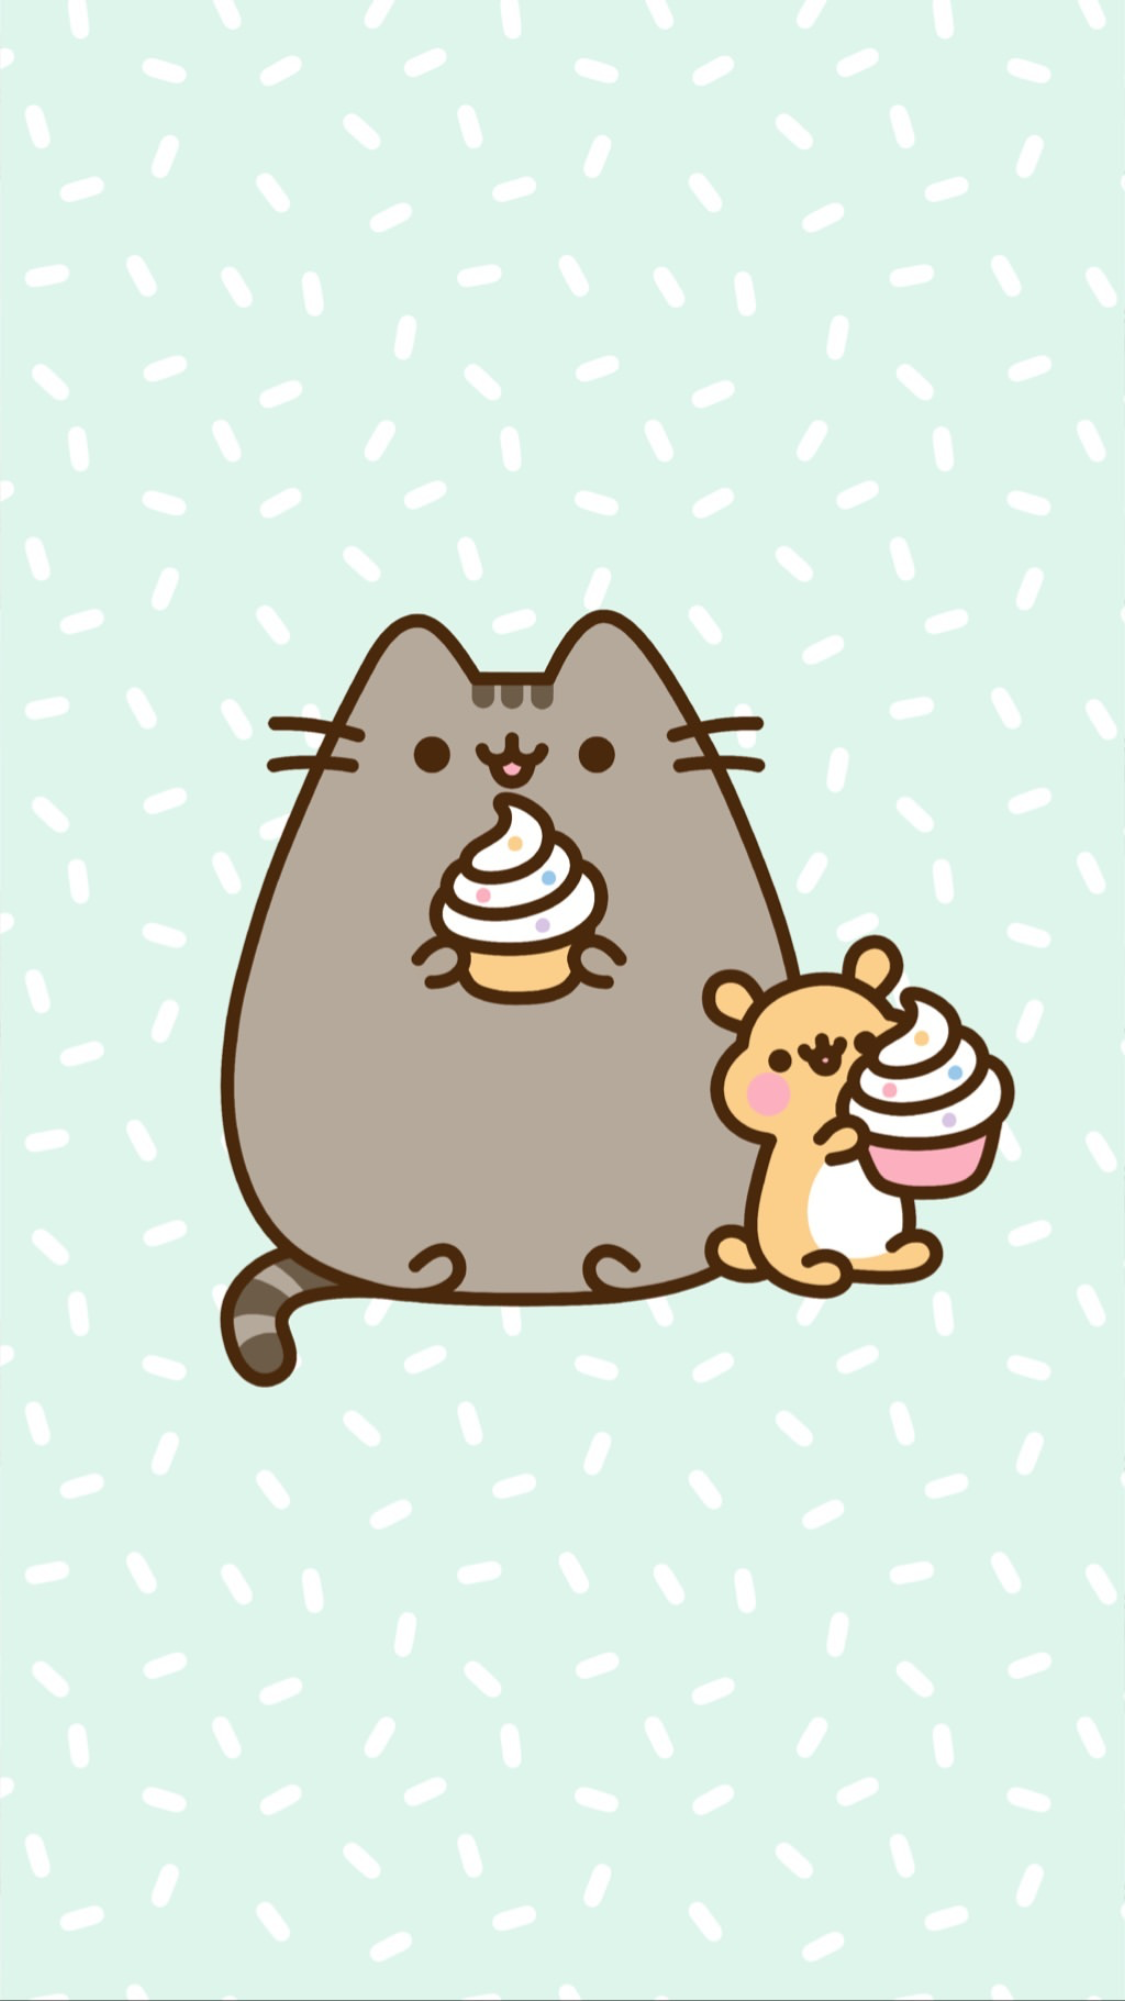 Pusheen Cupcakes With Images Pusheen Cute Cat Wallpaper Wallpaper Iphone Cute